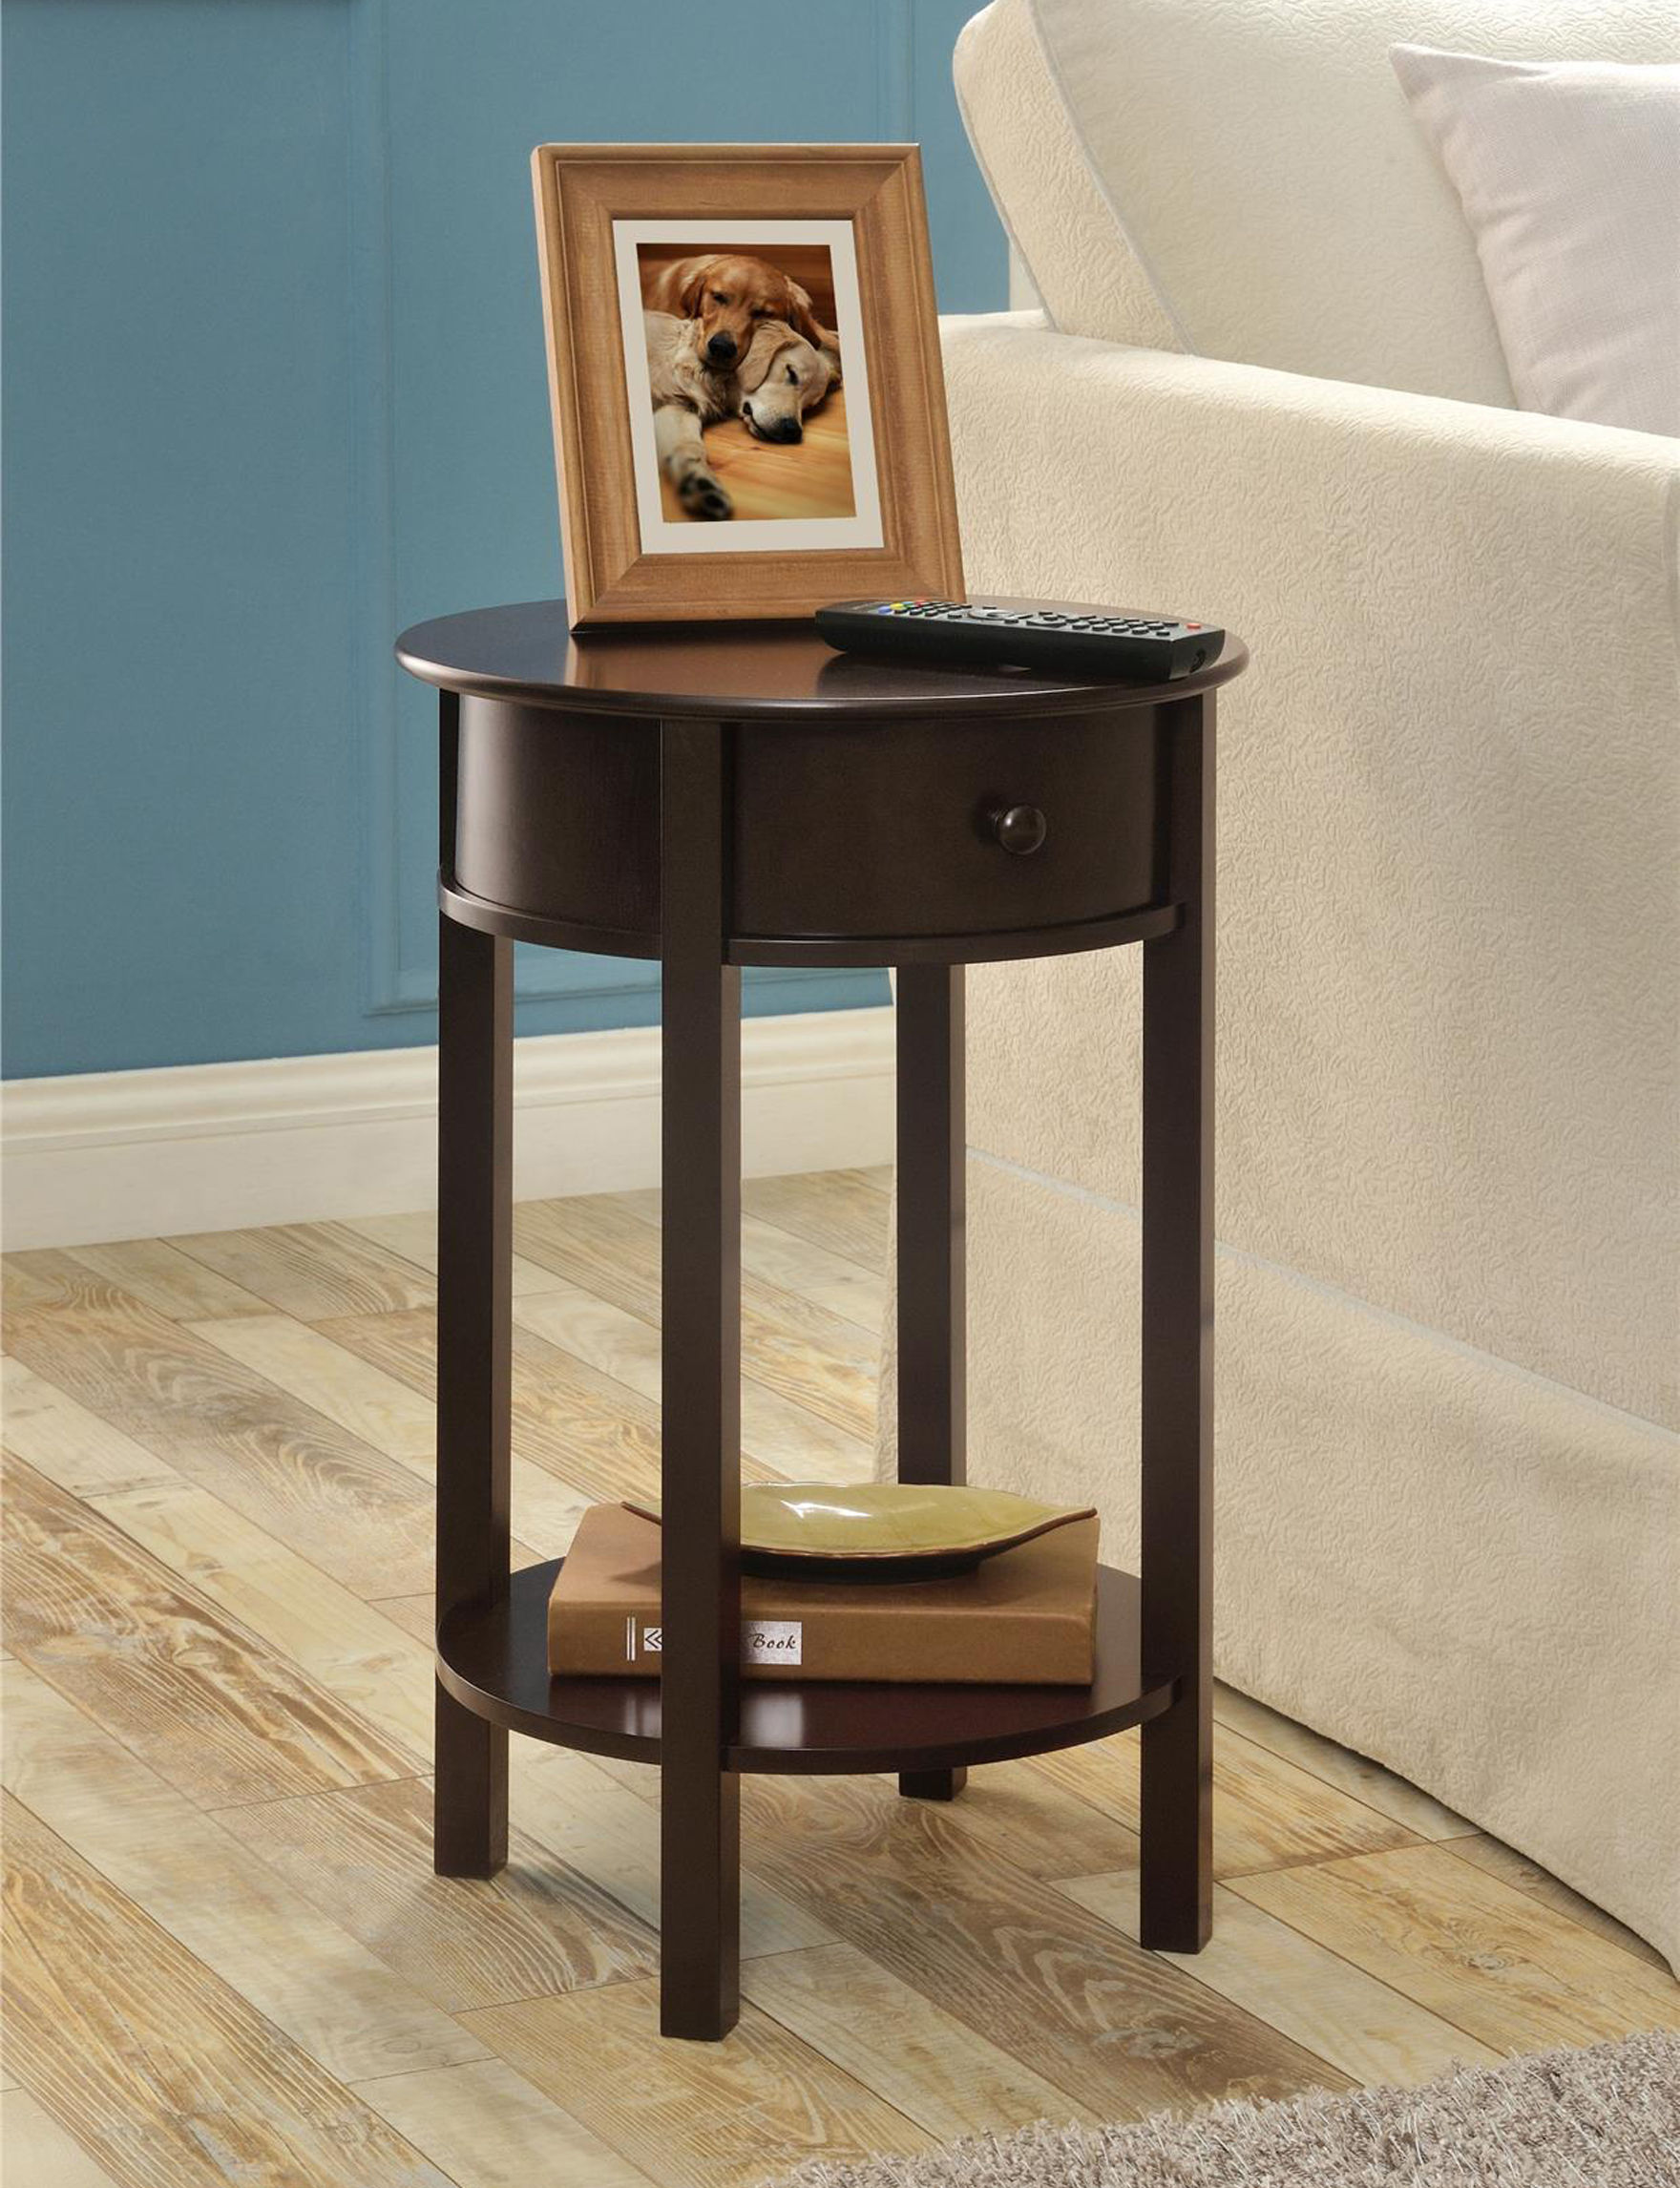 Ameriwood Espresso Accent & End Tables Living Room Furniture